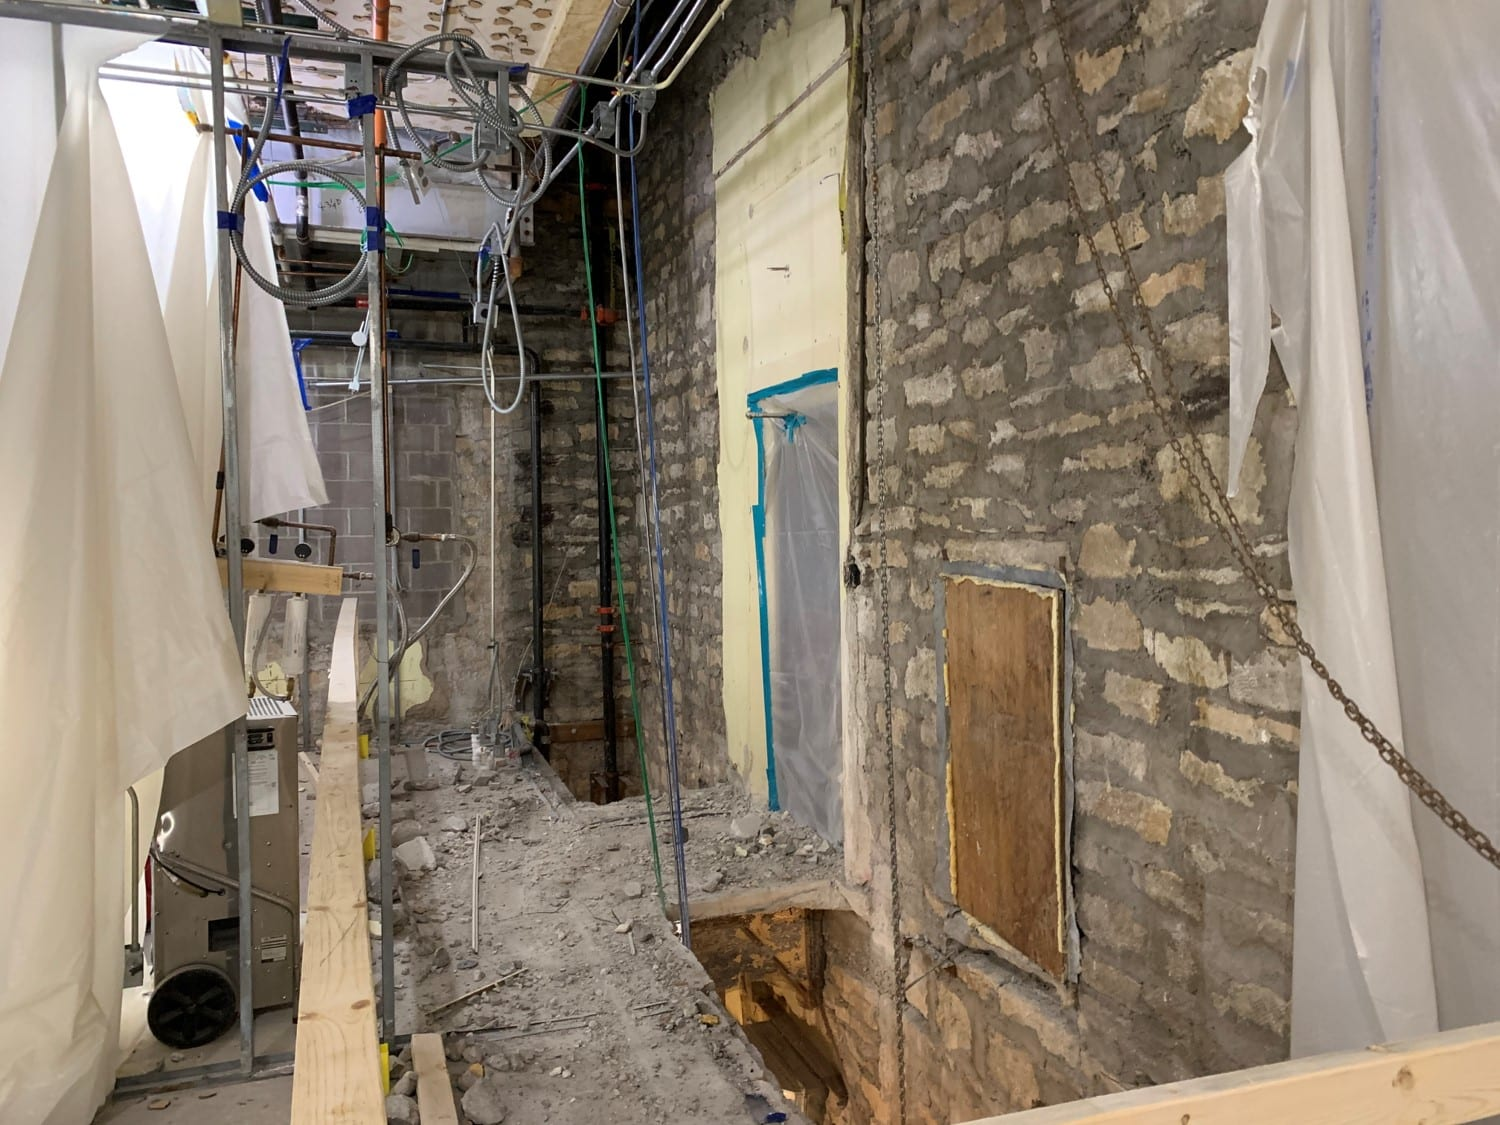 A rough limestone wall is at right. Two narrow rectangular-shaped holes are cut in the floor in front of the wall. Dust and stone debris coats the rest of the floor.